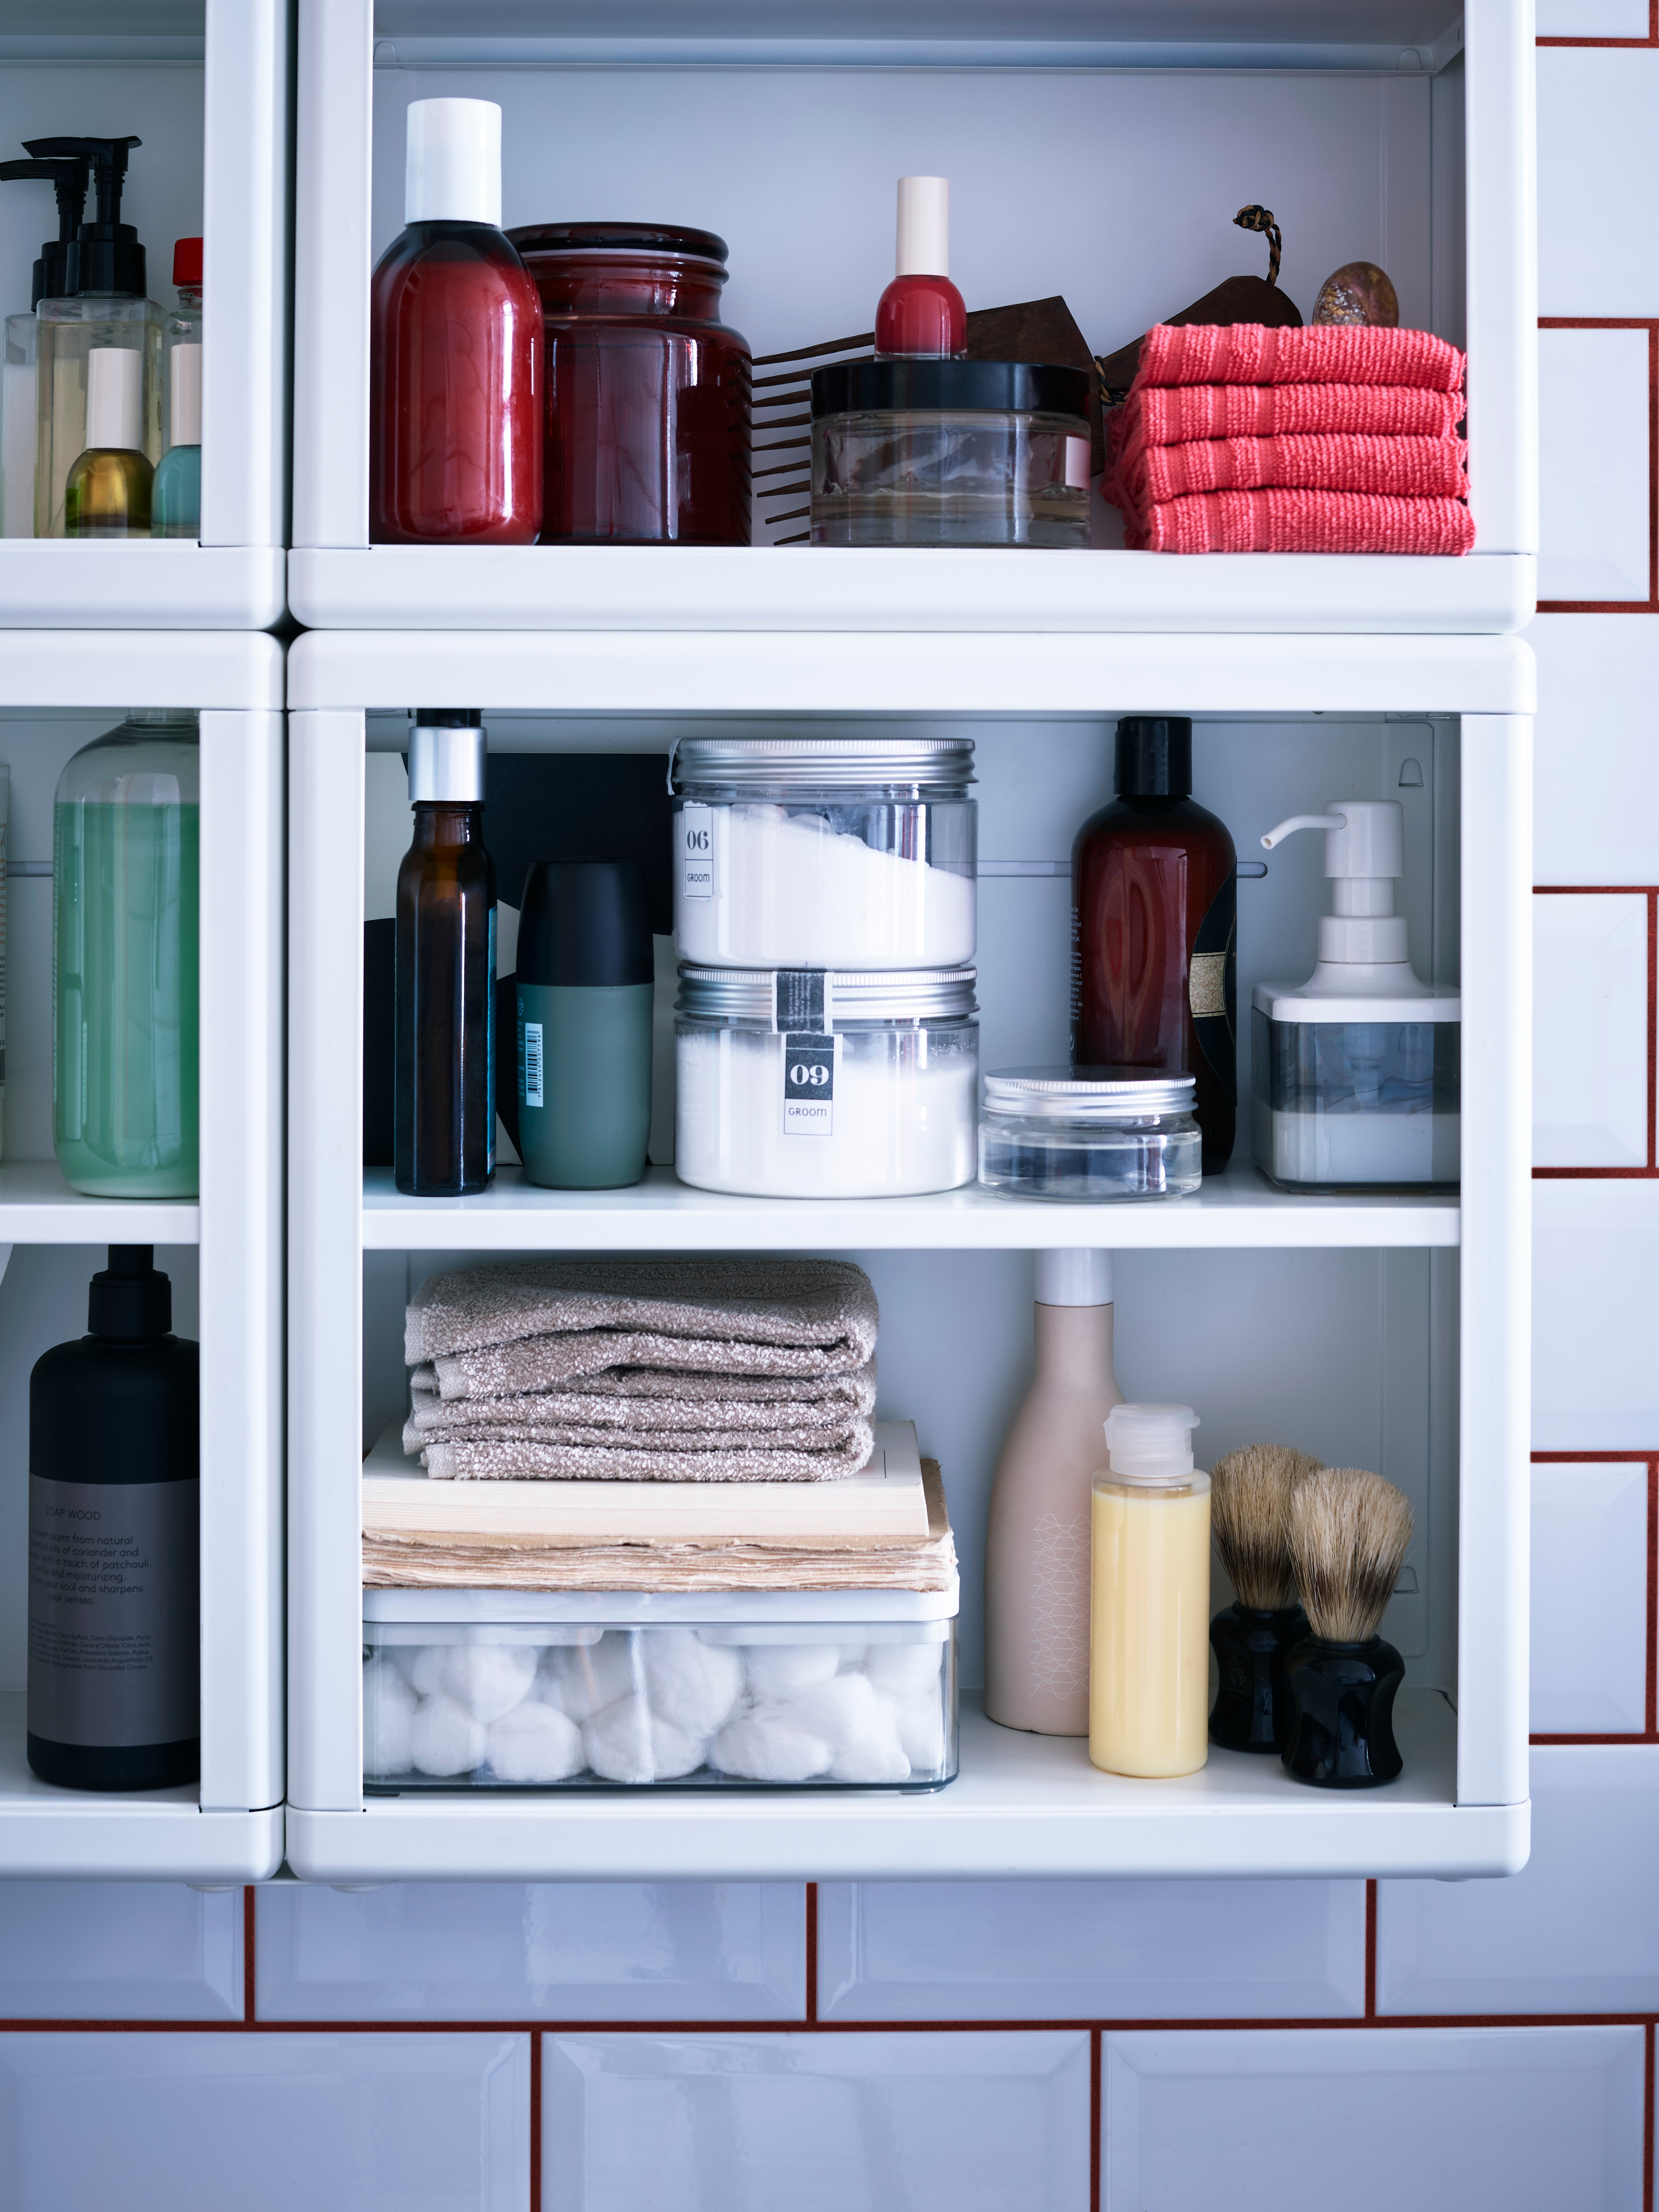 Close-up of modular wall shelves, hand towels, bath towels, storage boxes with lids and soap dispenser in bathroom with tiles.